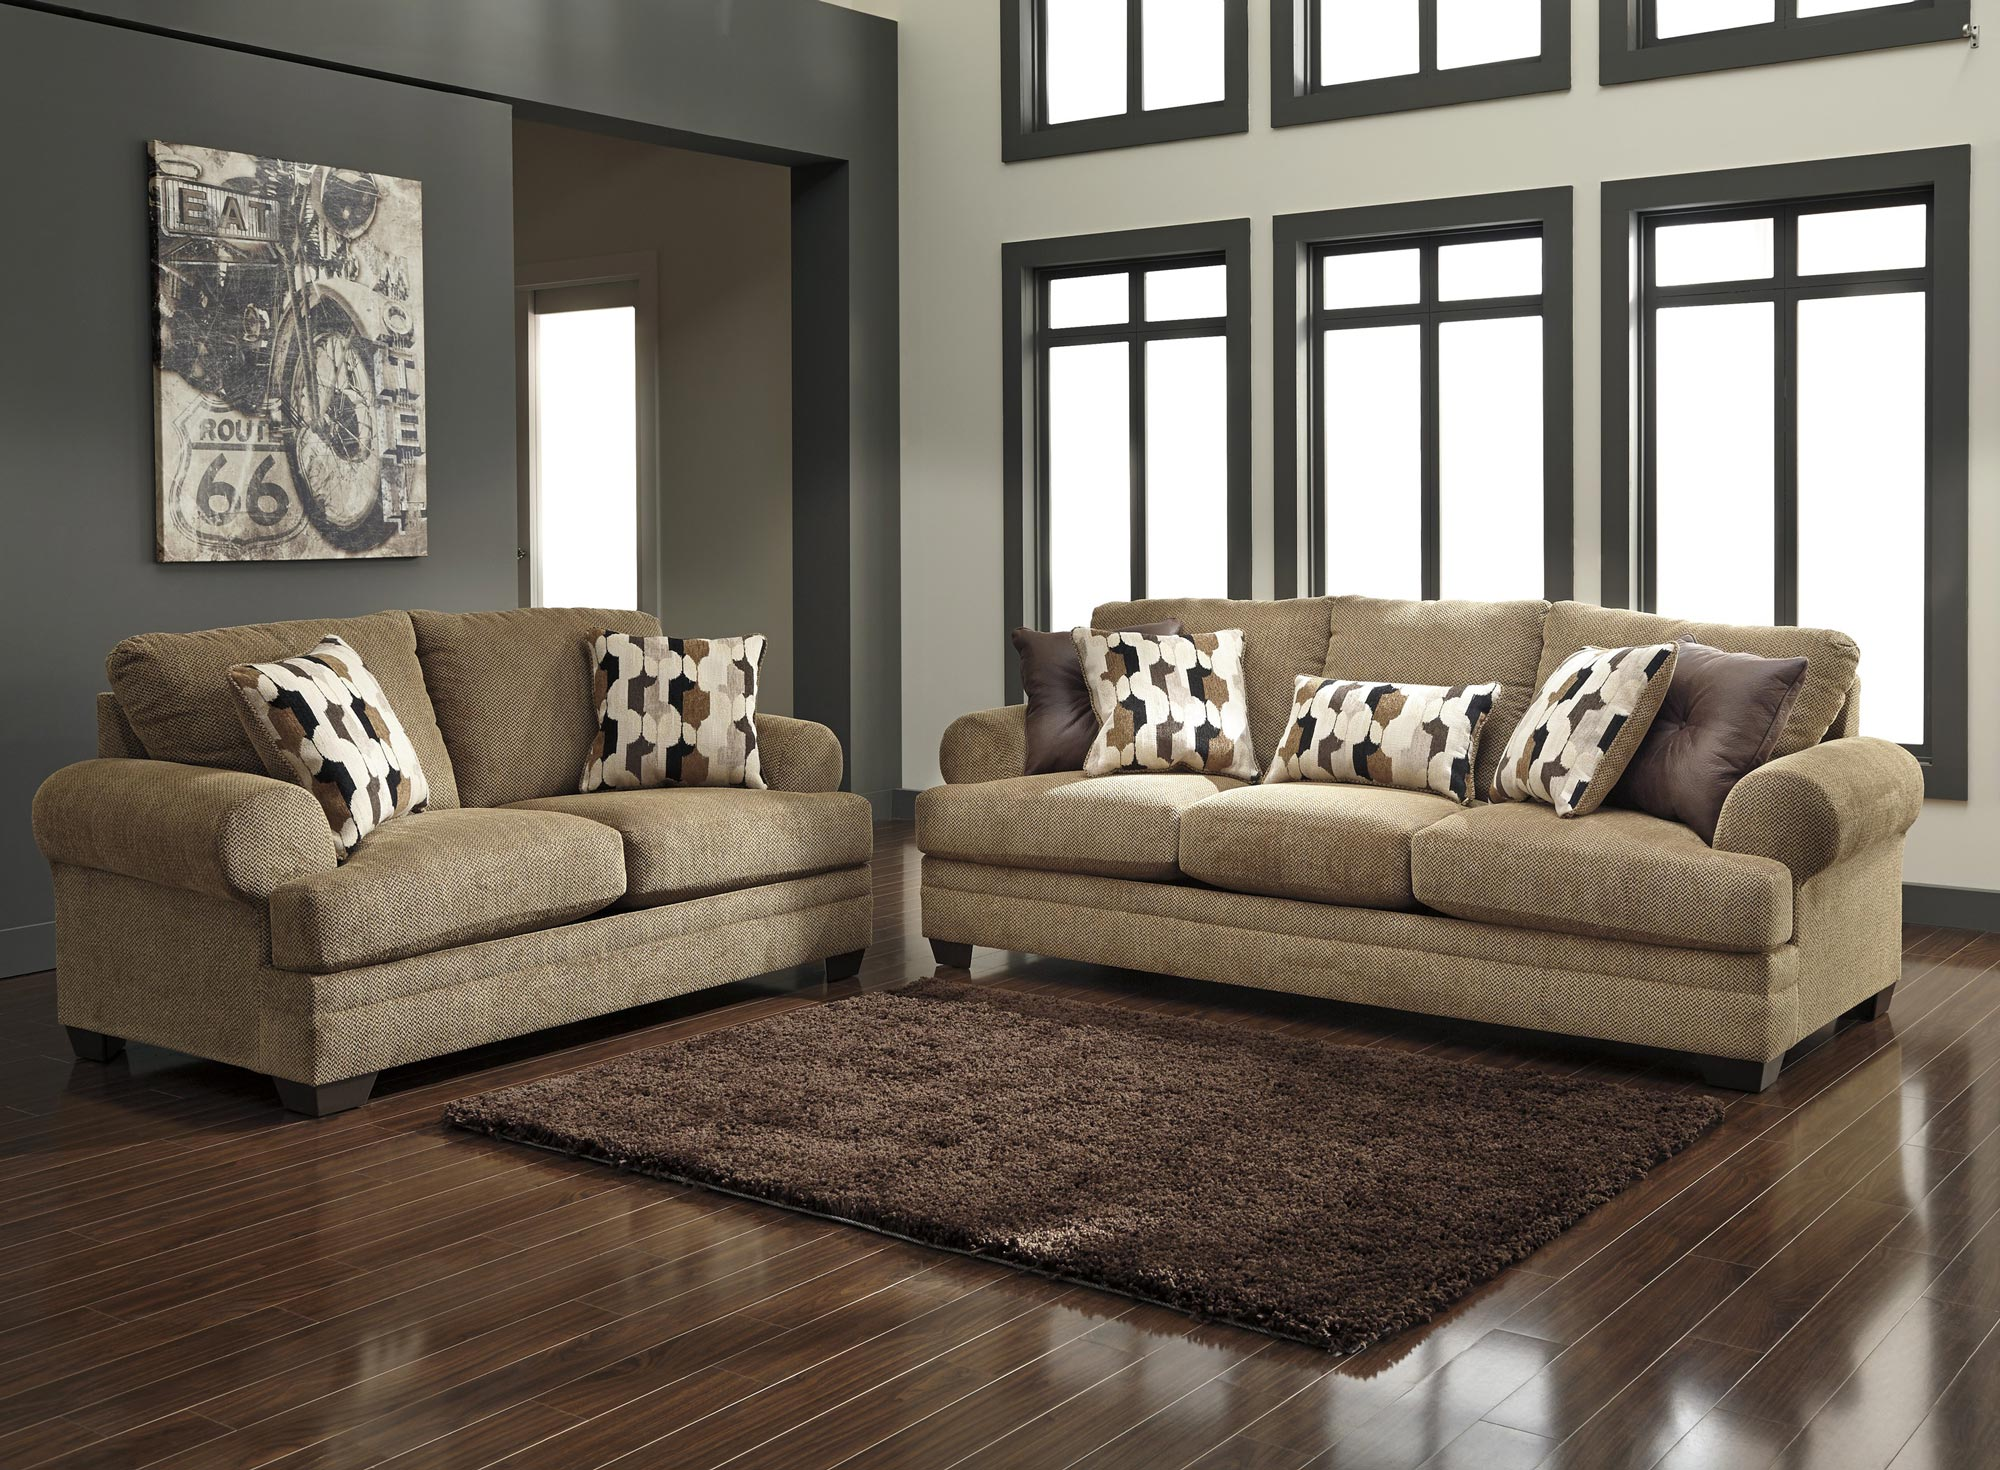 Marvelous photograph of Living Room Furniture (144 products) with #5E4A3B color and 2000x1470 pixels